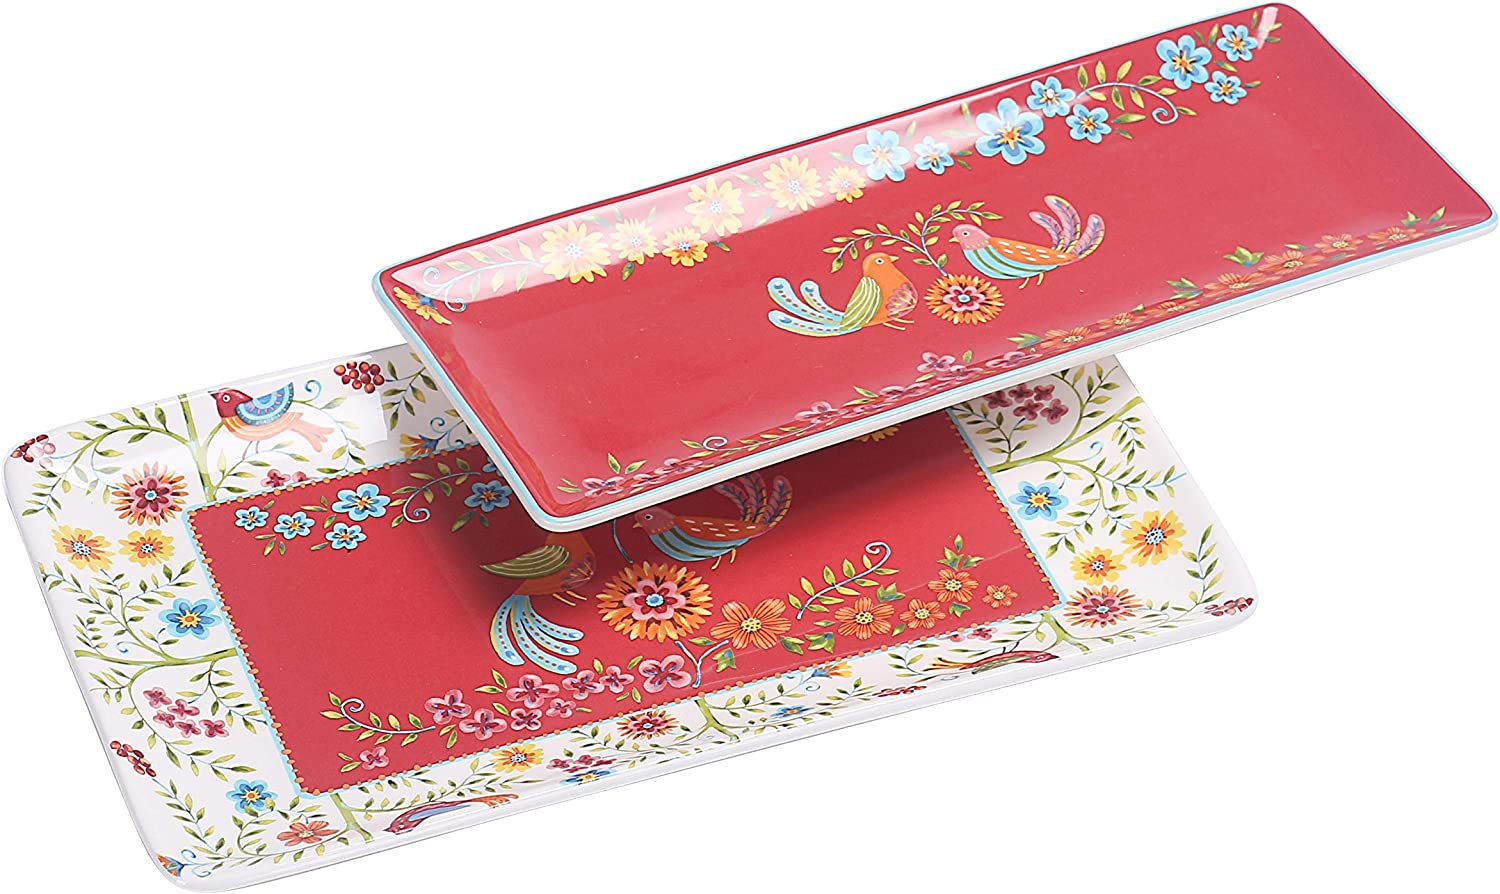 Bico Red Spring Bird Ceramic 14 inch Rectangular Serving Platter, Set of 2, for Serving Salad, Pasta, Cheese, Ham, Appetizer, Microwave & Dishwasher Safe